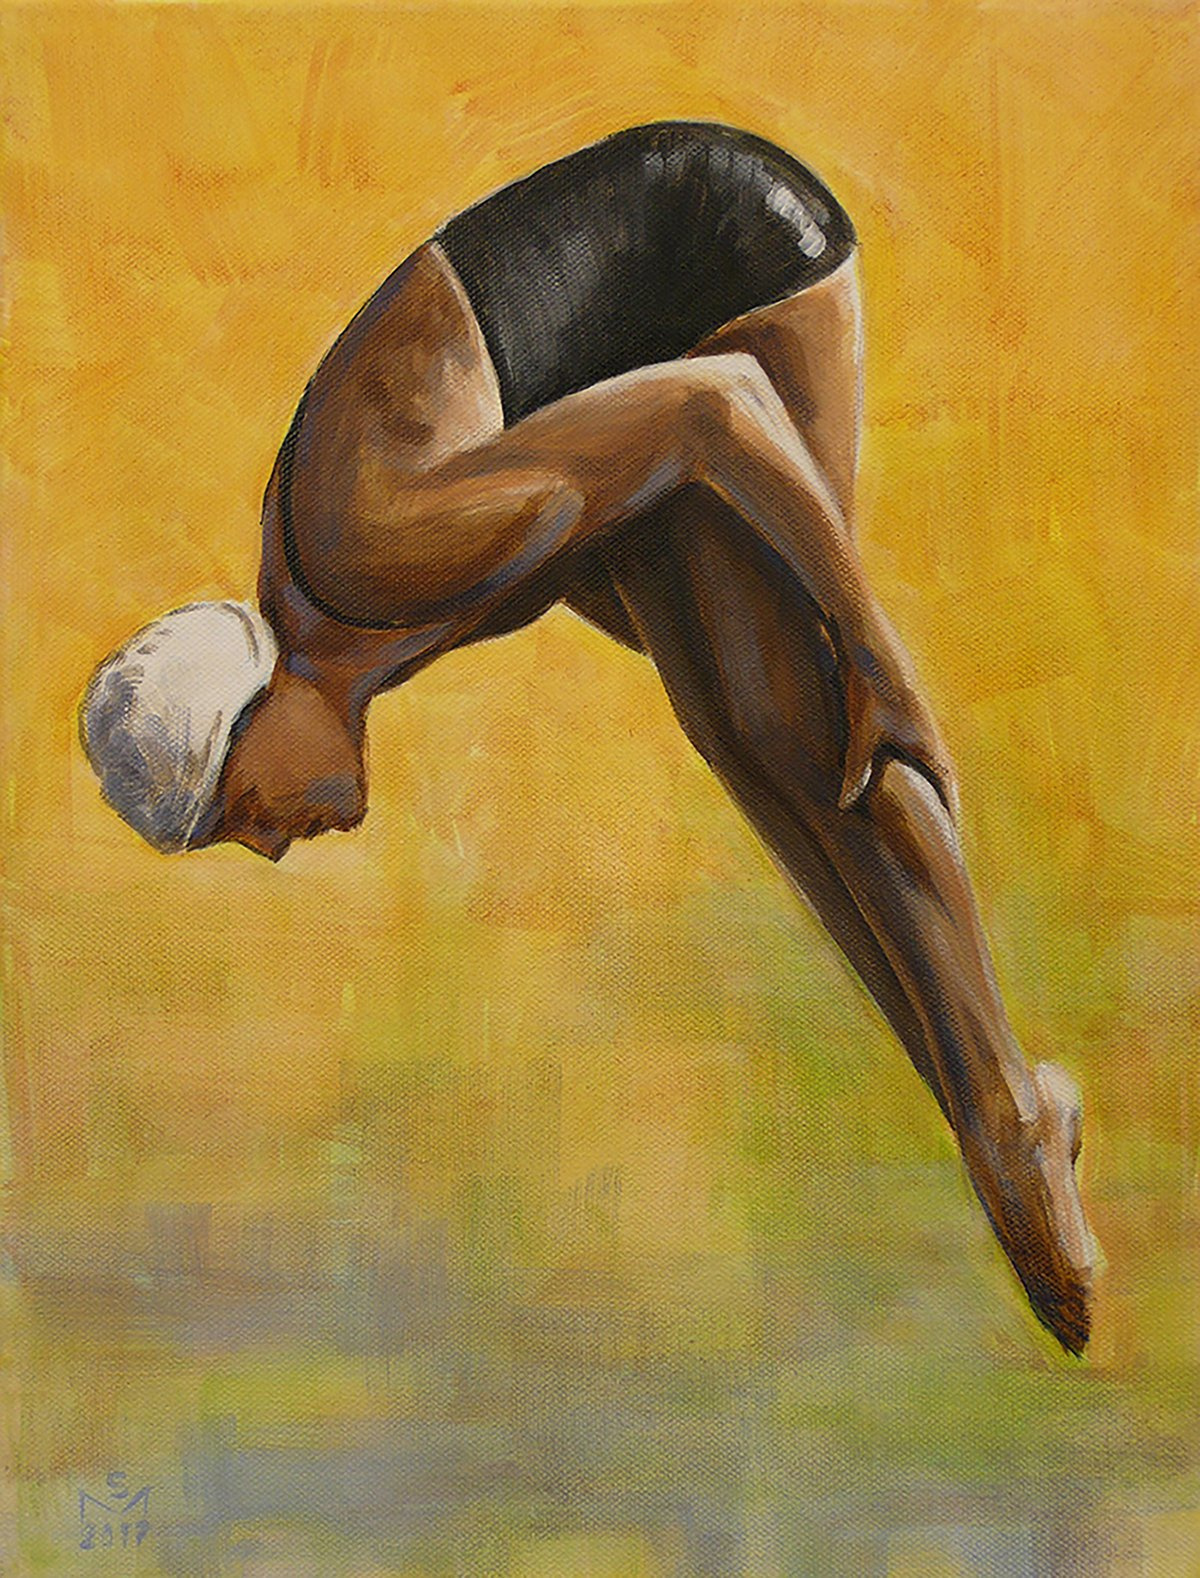 The Diver by Sarah Morrissette is represented by atKinsky die Sammlung Kinsky